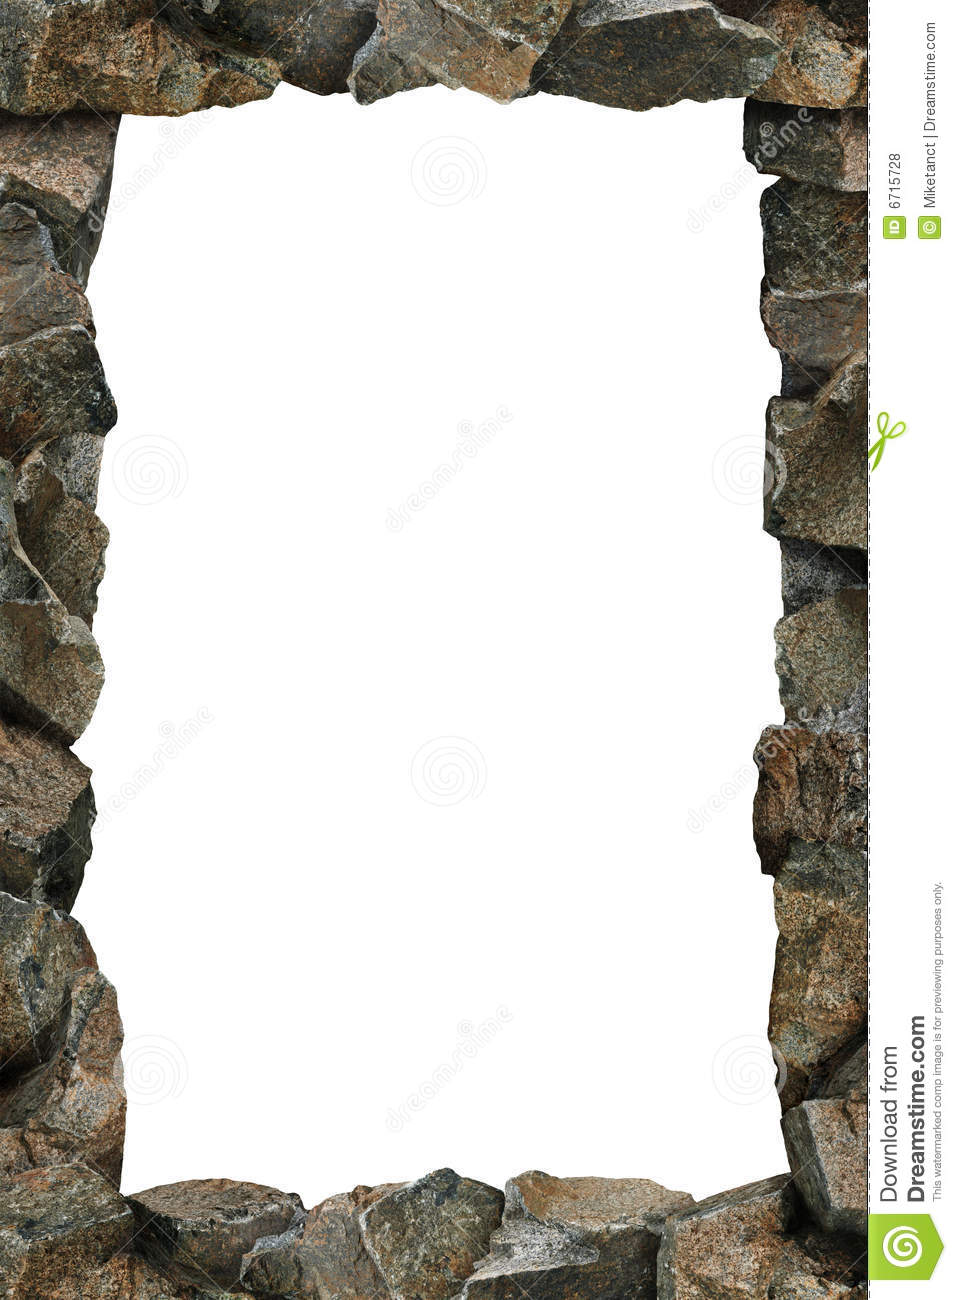 continuous line of rocks forming a frame. Clipping path included for ...